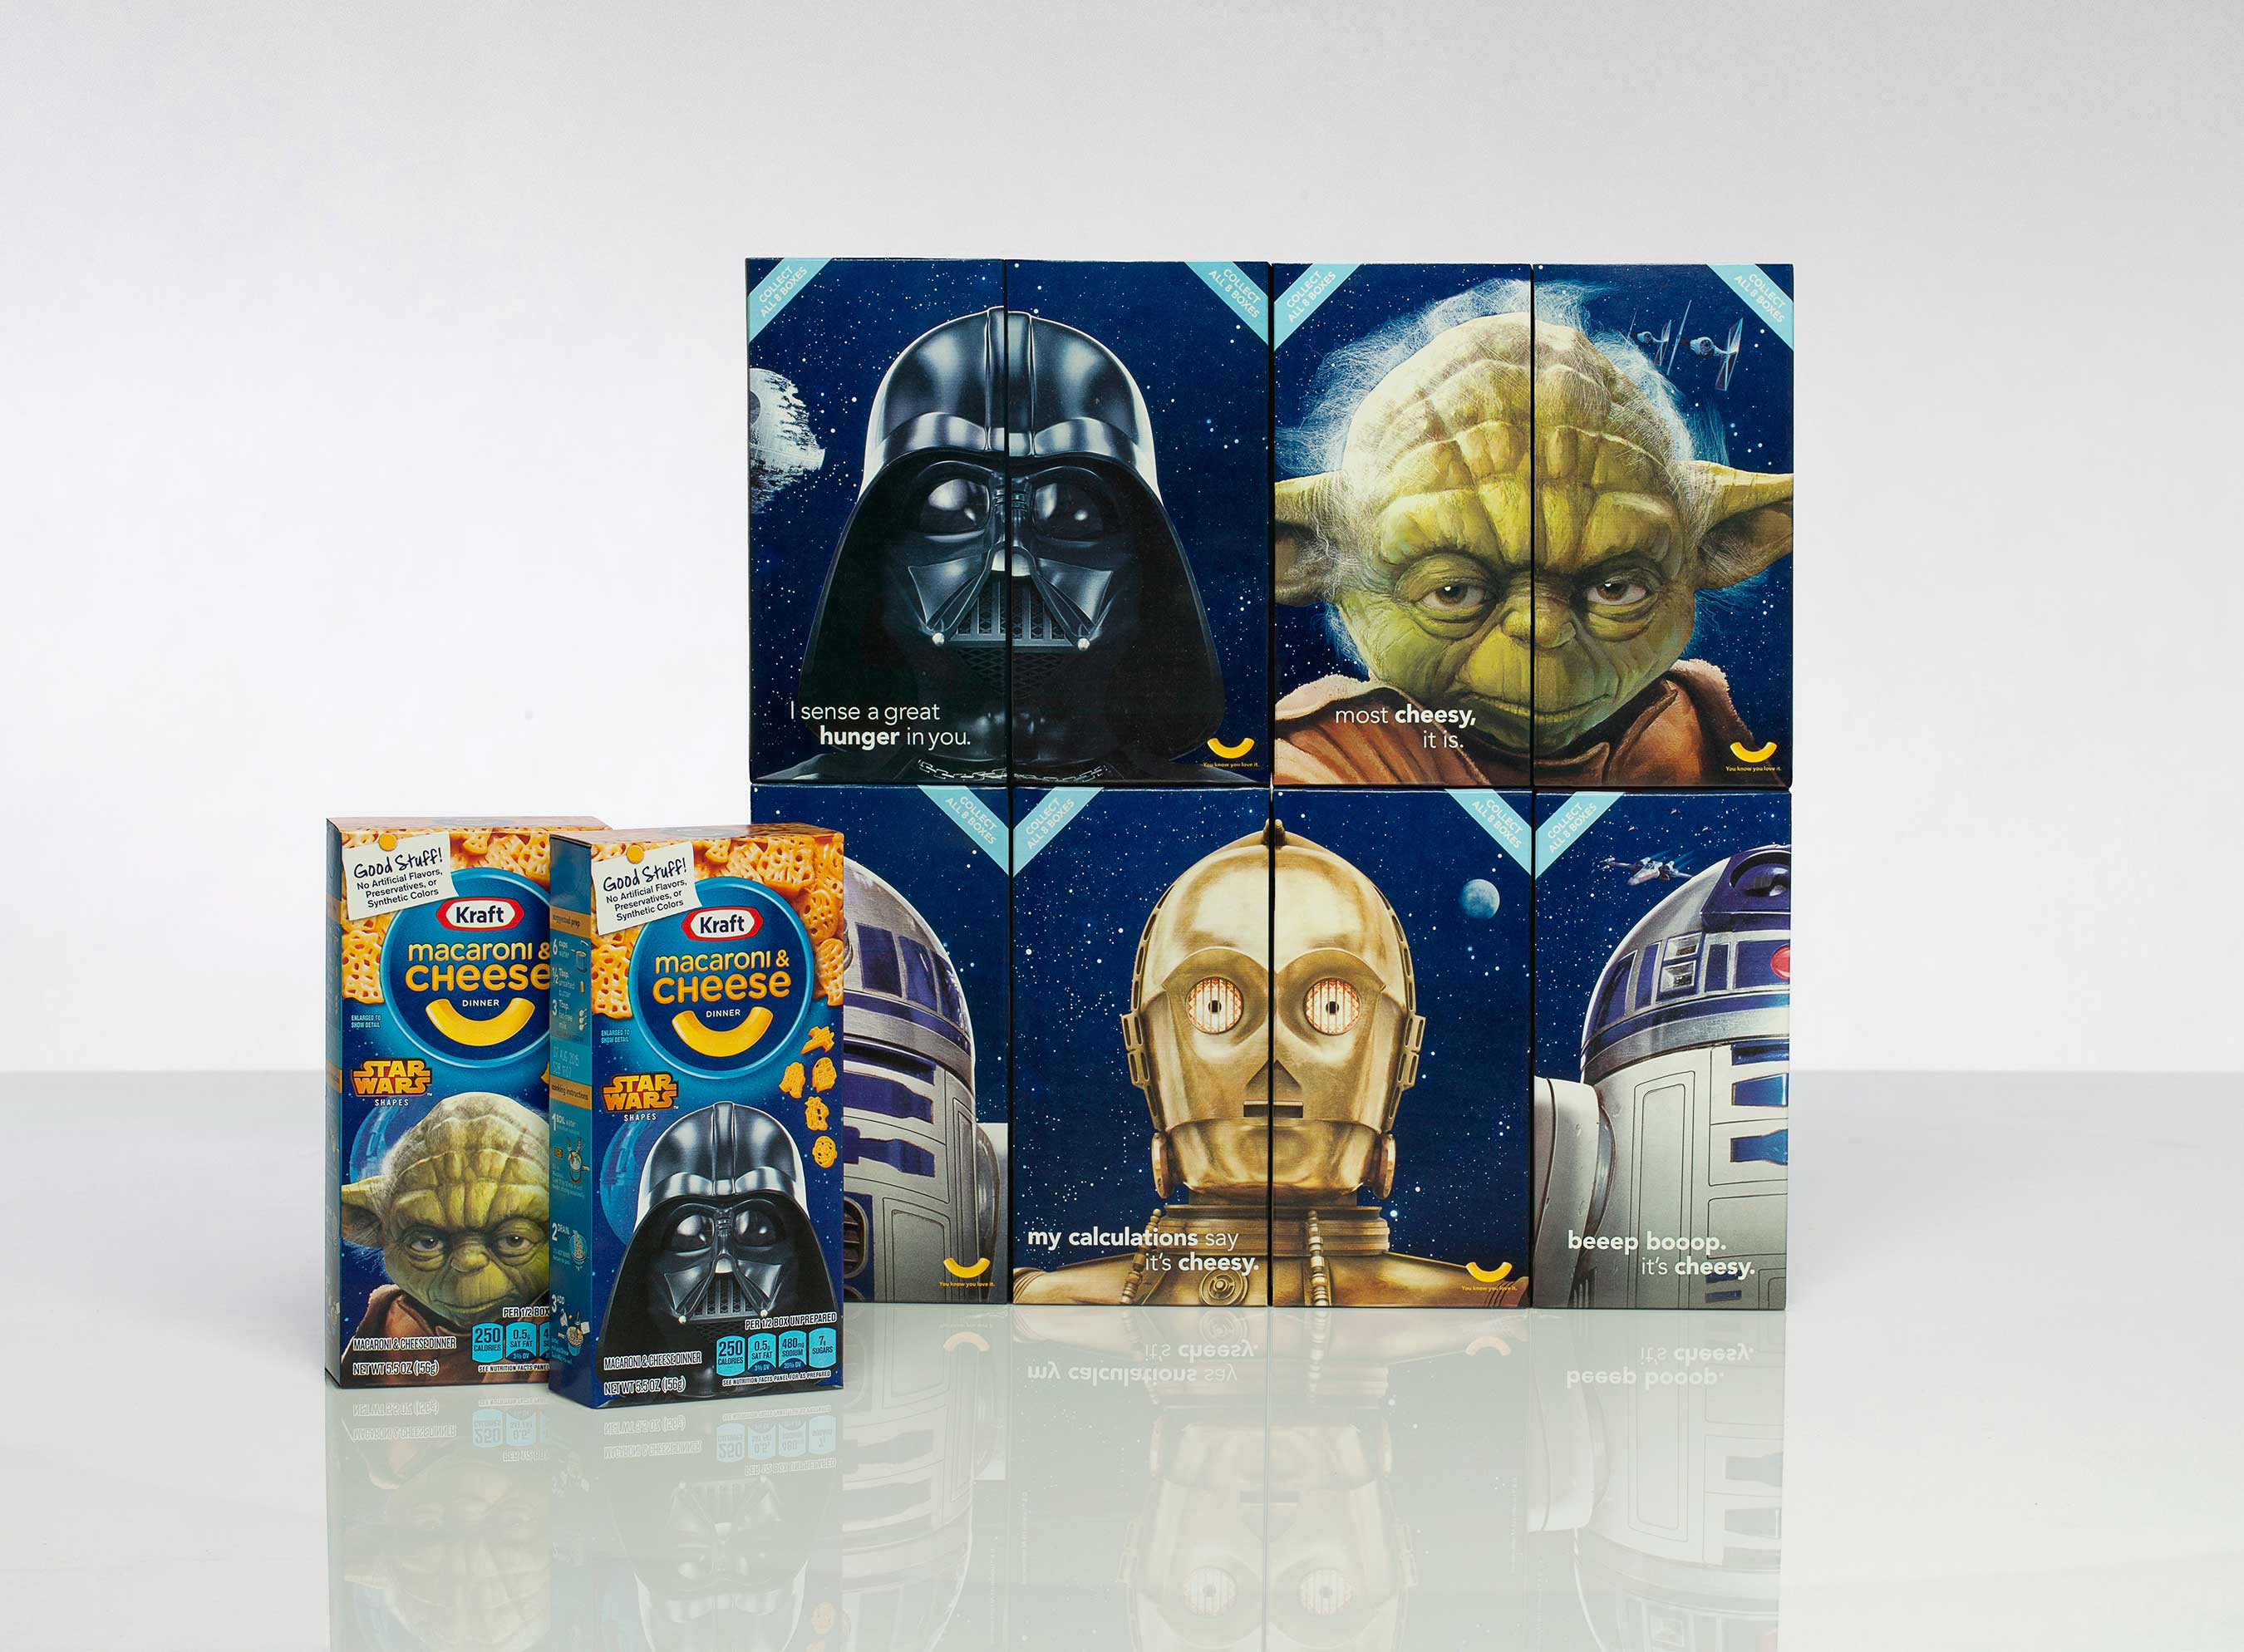 Featuring left and right faces of Yoda, Darth Vader, R2D2 and C3PO, fans can add the character boxes on shelves now to their collections.